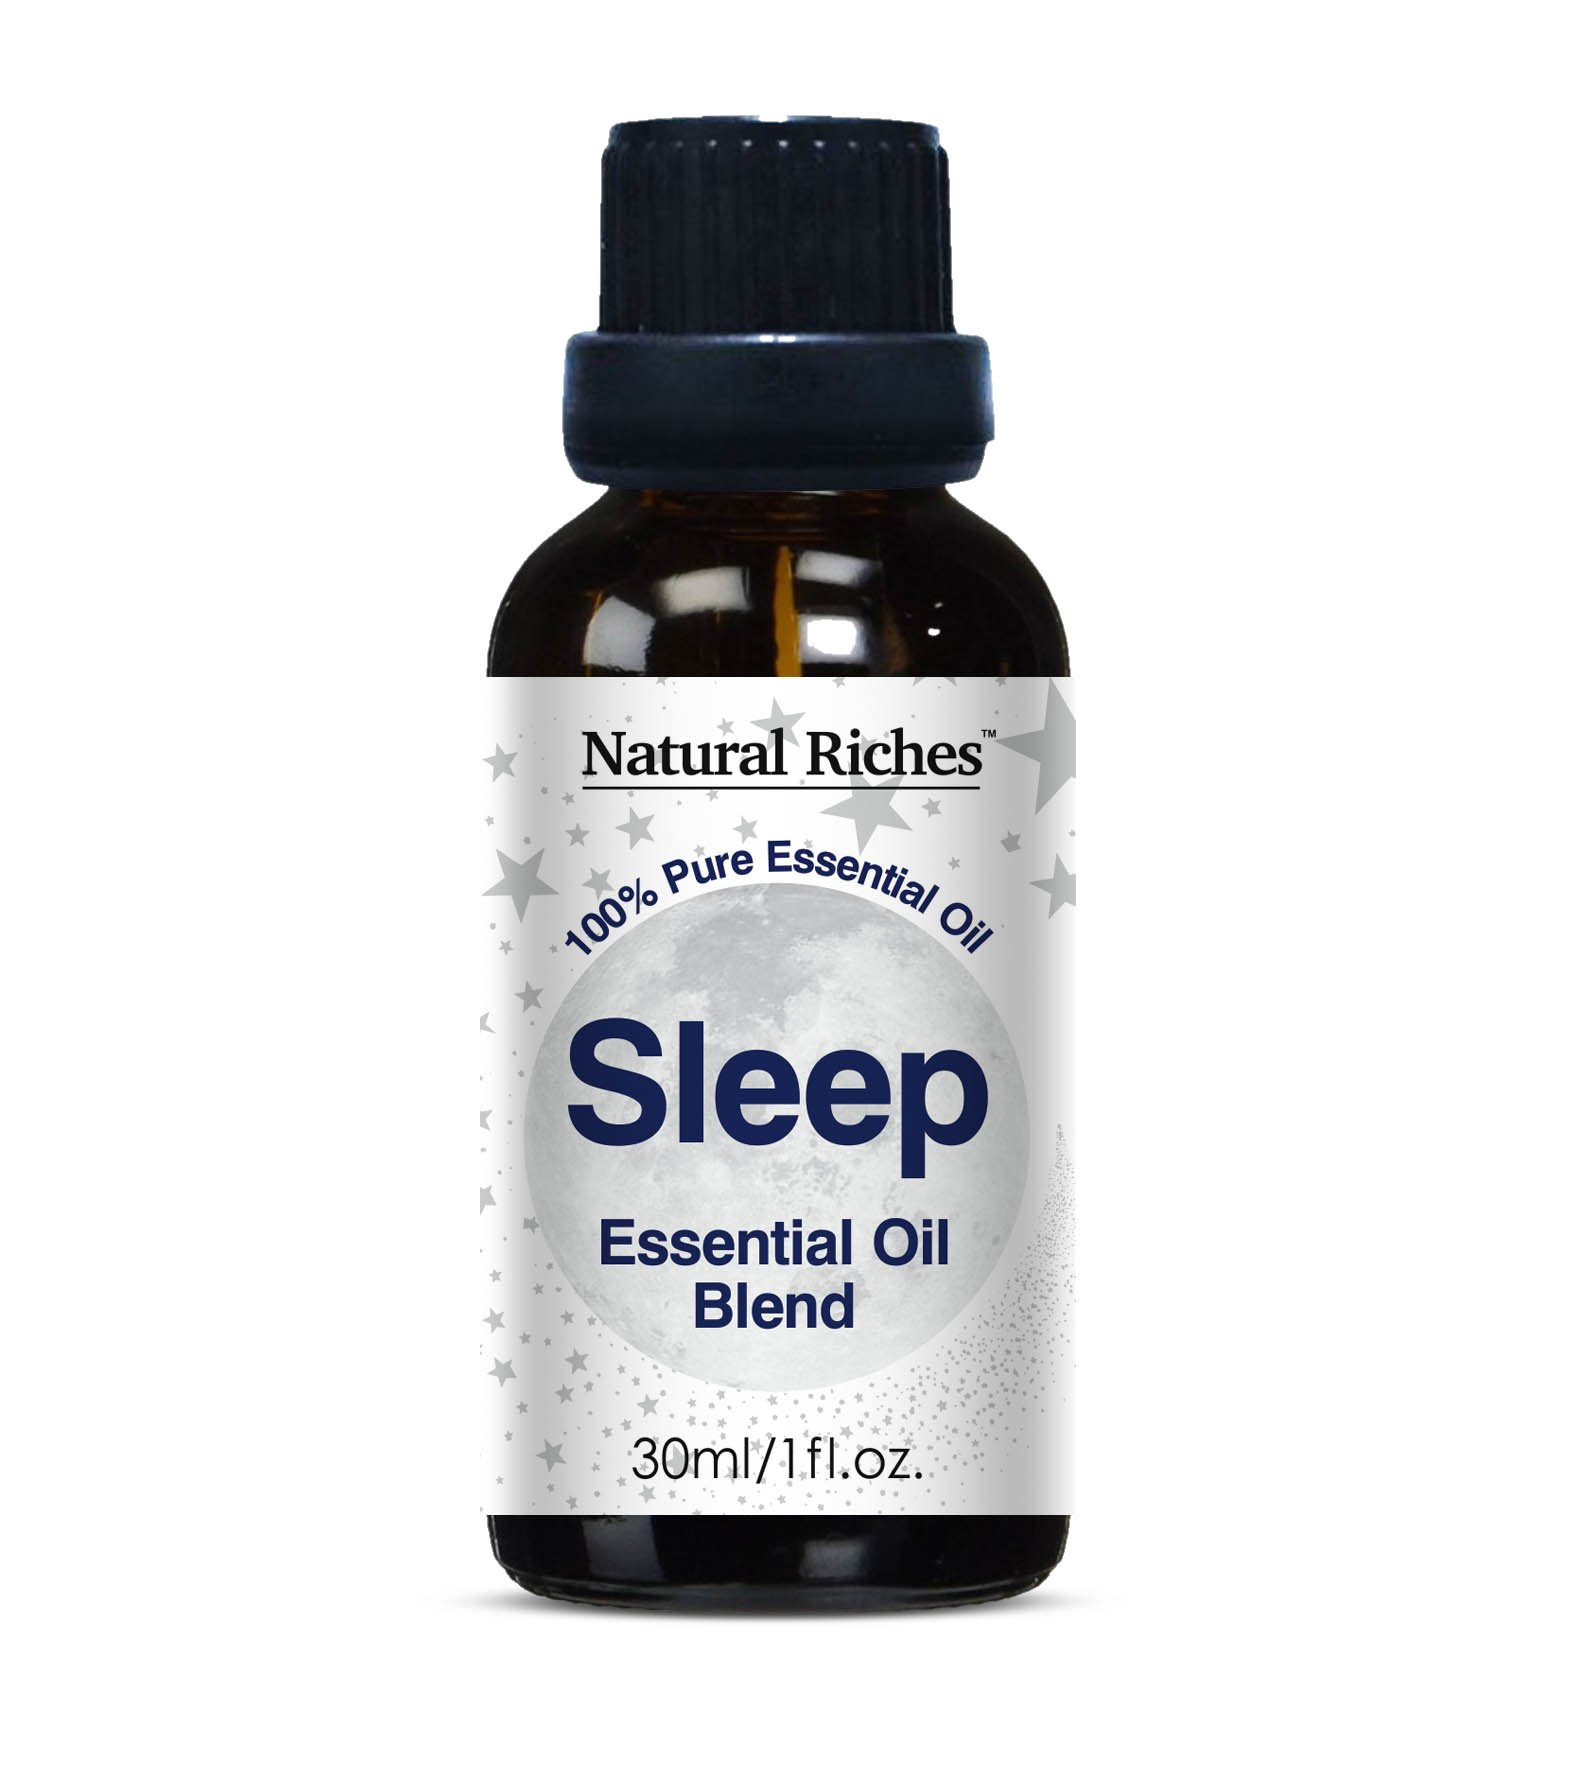 Aromatherapy Good Night Sleep Calming Blend Essential Oils -30ml 100% Pure and Natural Therapeutic Grade for Natural Sleep Aid, Relaxation, Stress, Anxiety Relief, Boost Mood and Helps Depression